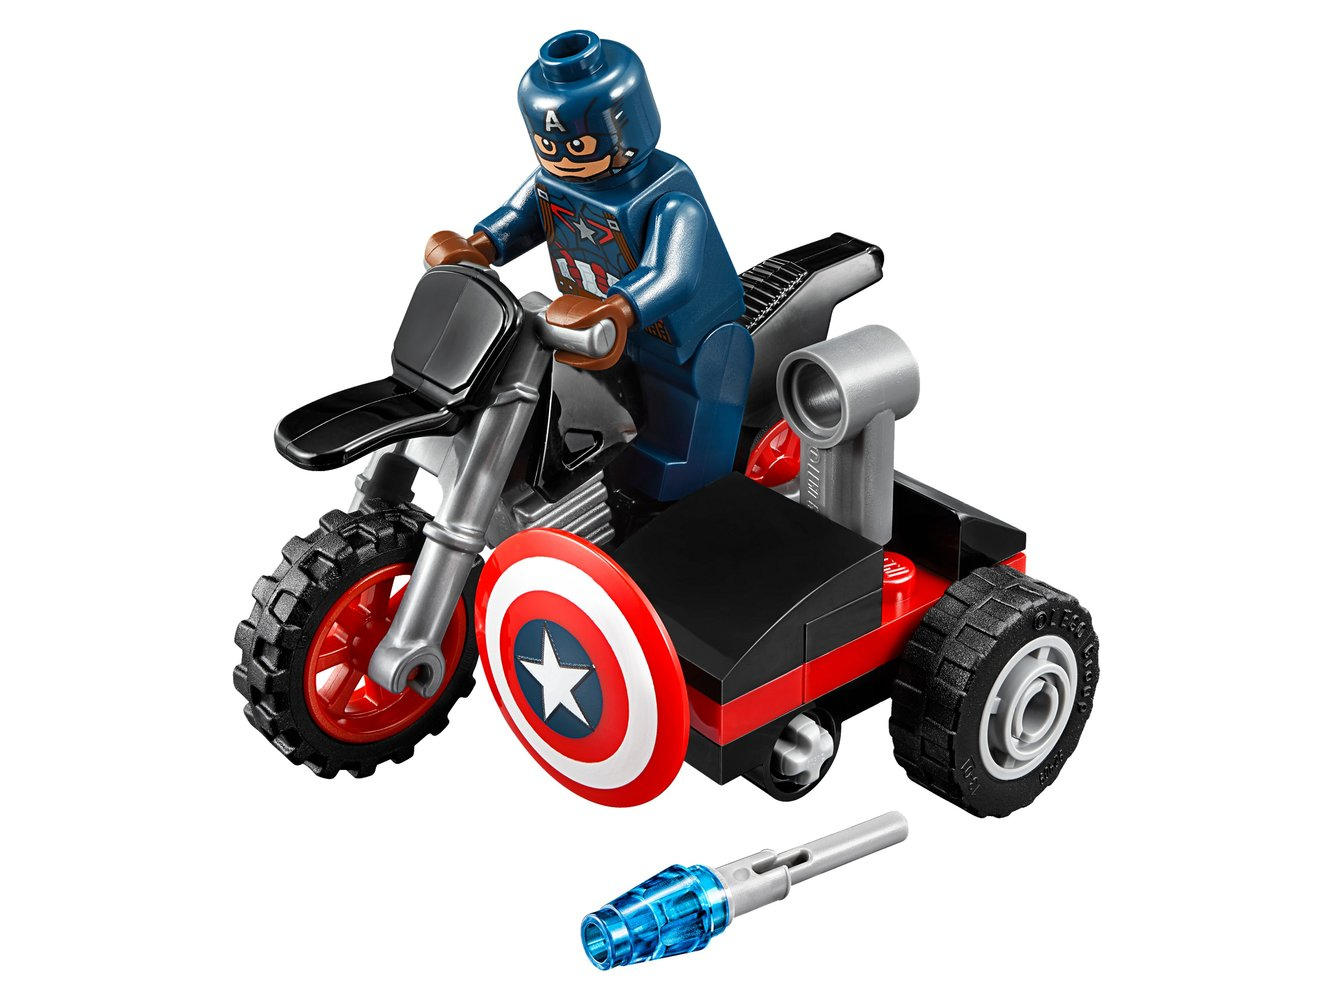 Captain America's Motorcycle